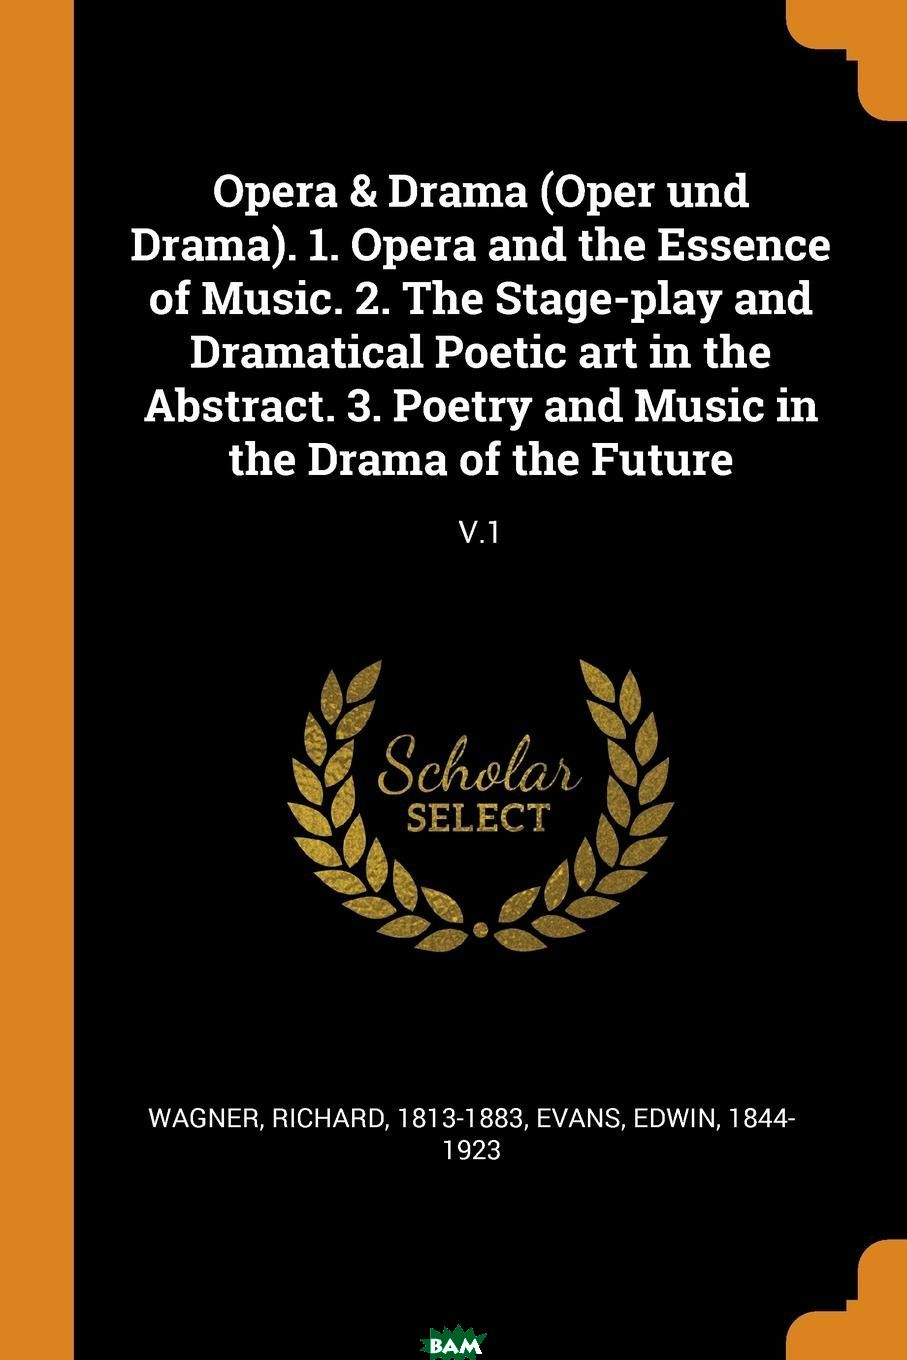 Купить Opera . Drama (Oper und Drama). 1. Opera and the Essence of Music. 2. The Stage-play and Dramatical Poetic art in the Abstract. 3. Poetry and Music in the Drama of the Future. V.1, Richard Wagner, Edwin Evans, 9780353314184